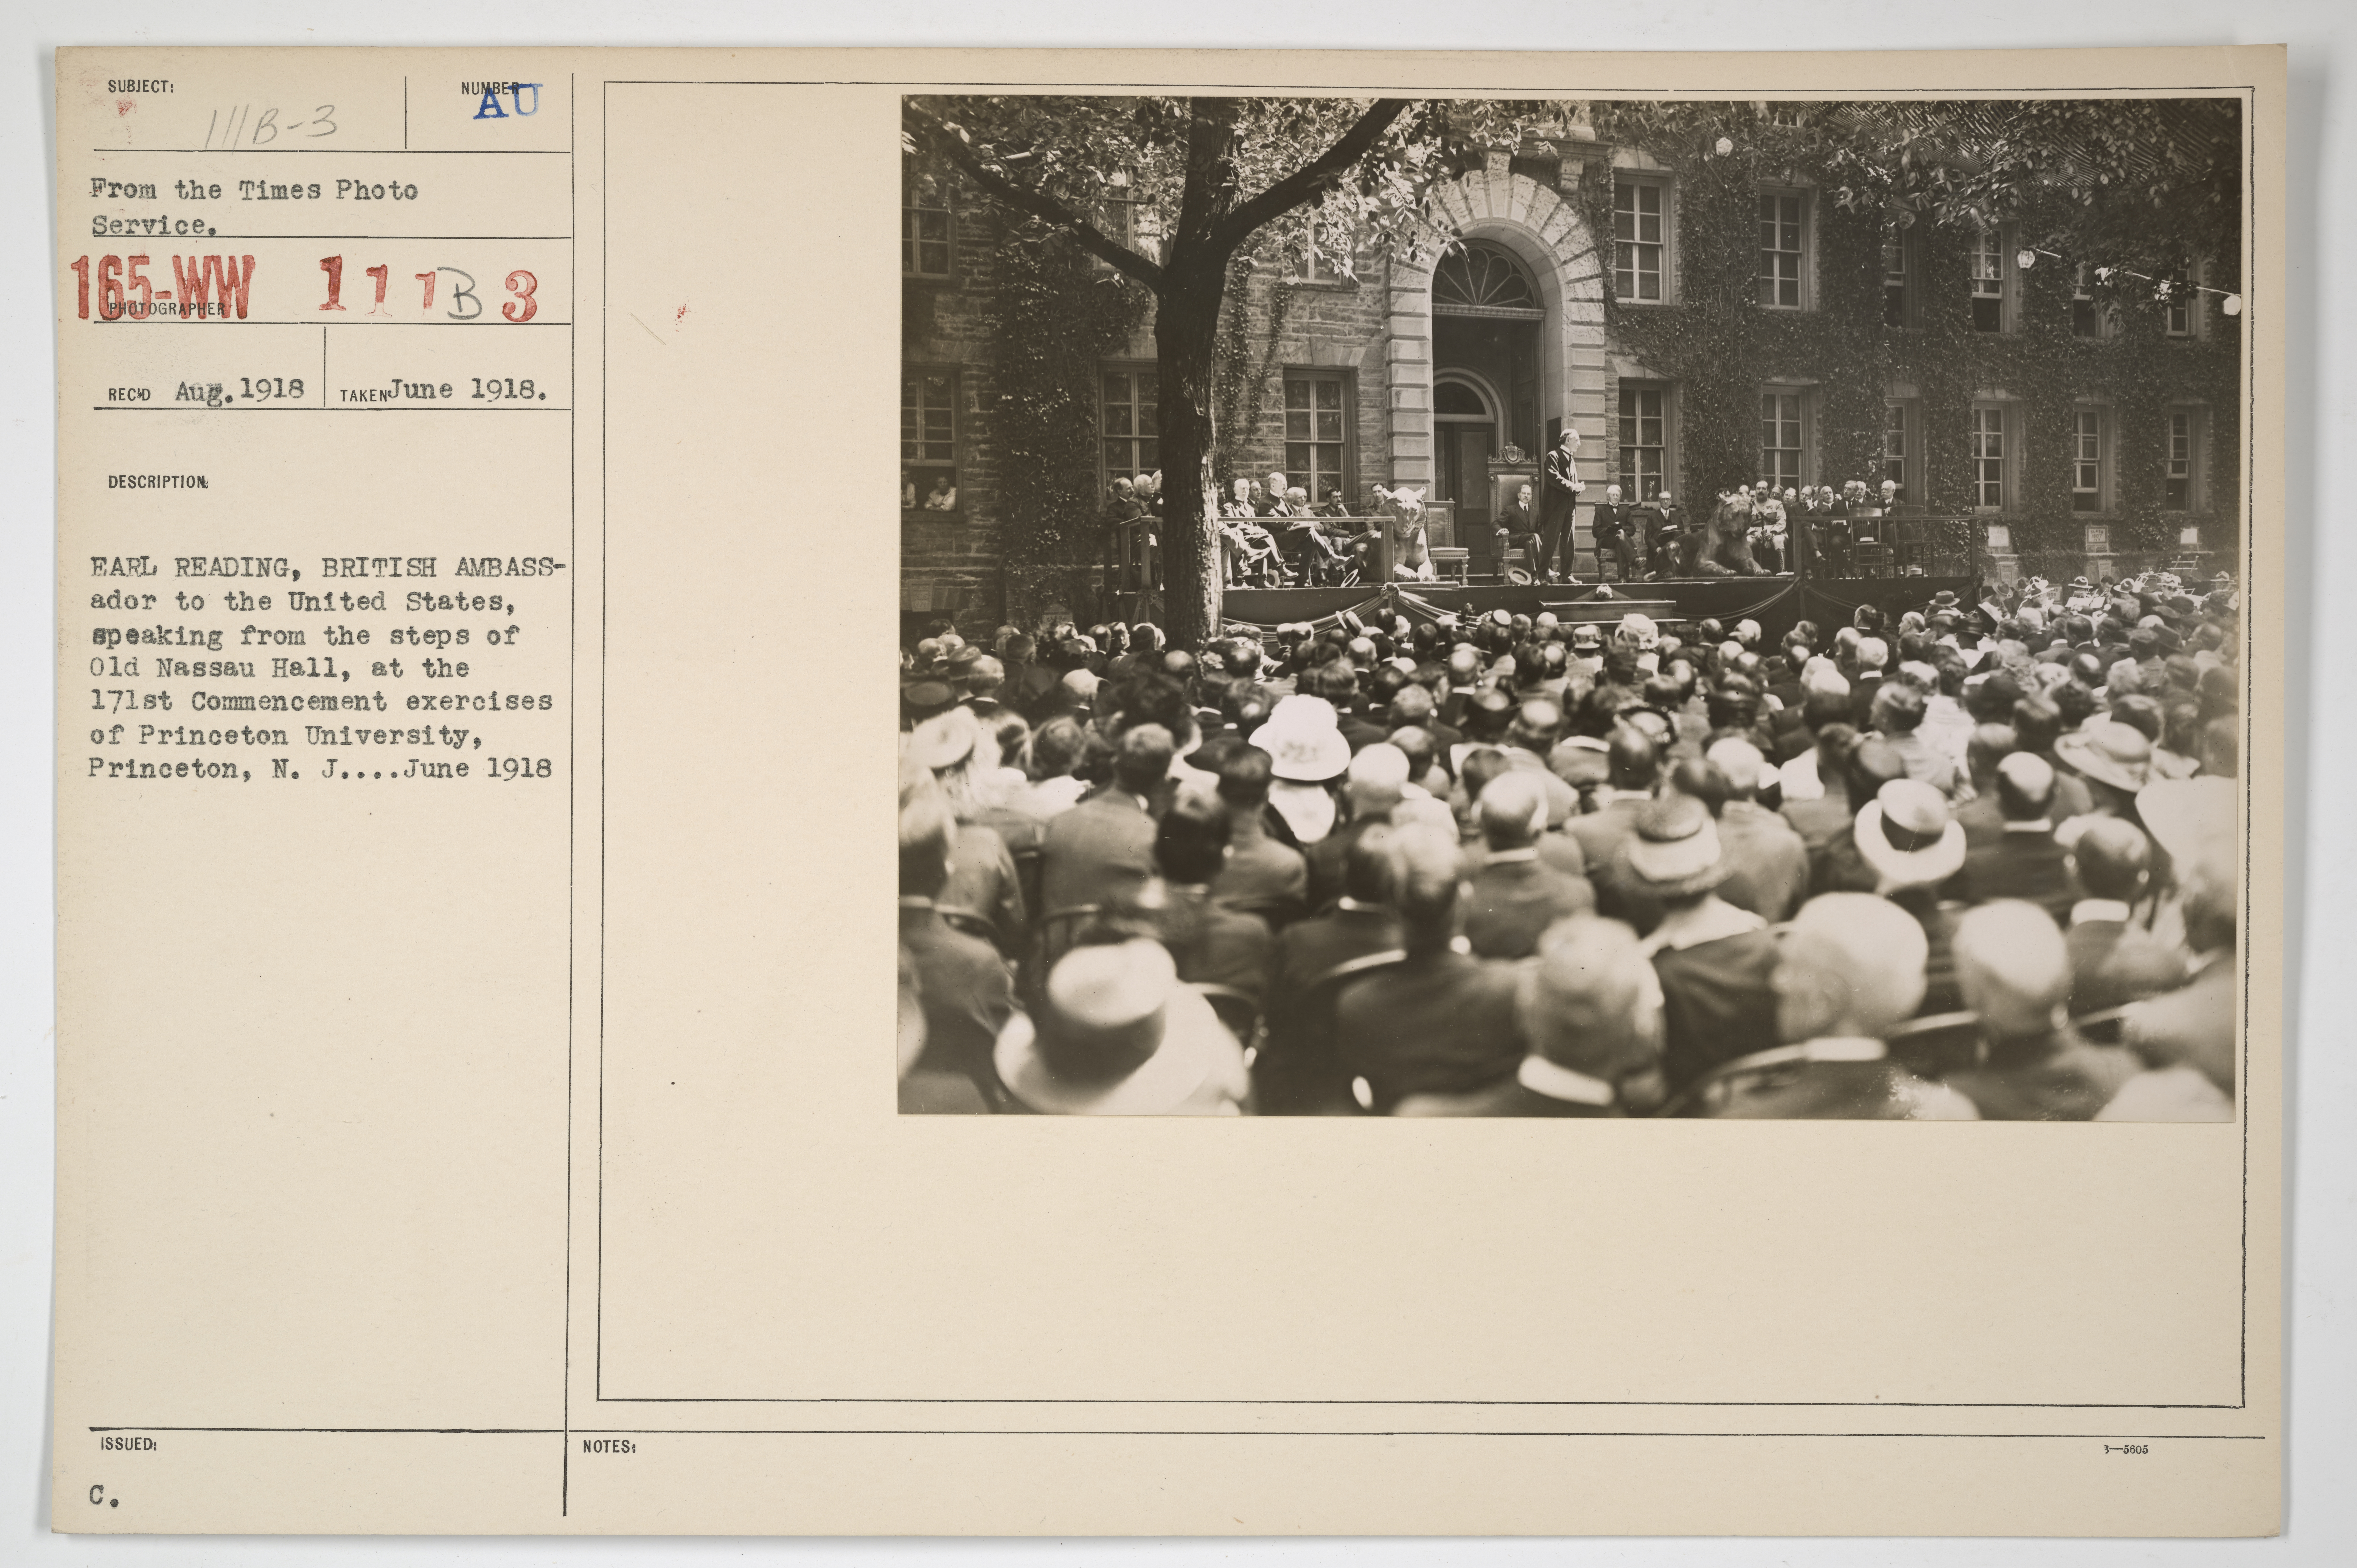 Filecolleges and universities princeton earl reading british filecolleges and universities princeton earl reading british ambassador to the united states speaking from the steps of old nassau hall ibookread Download